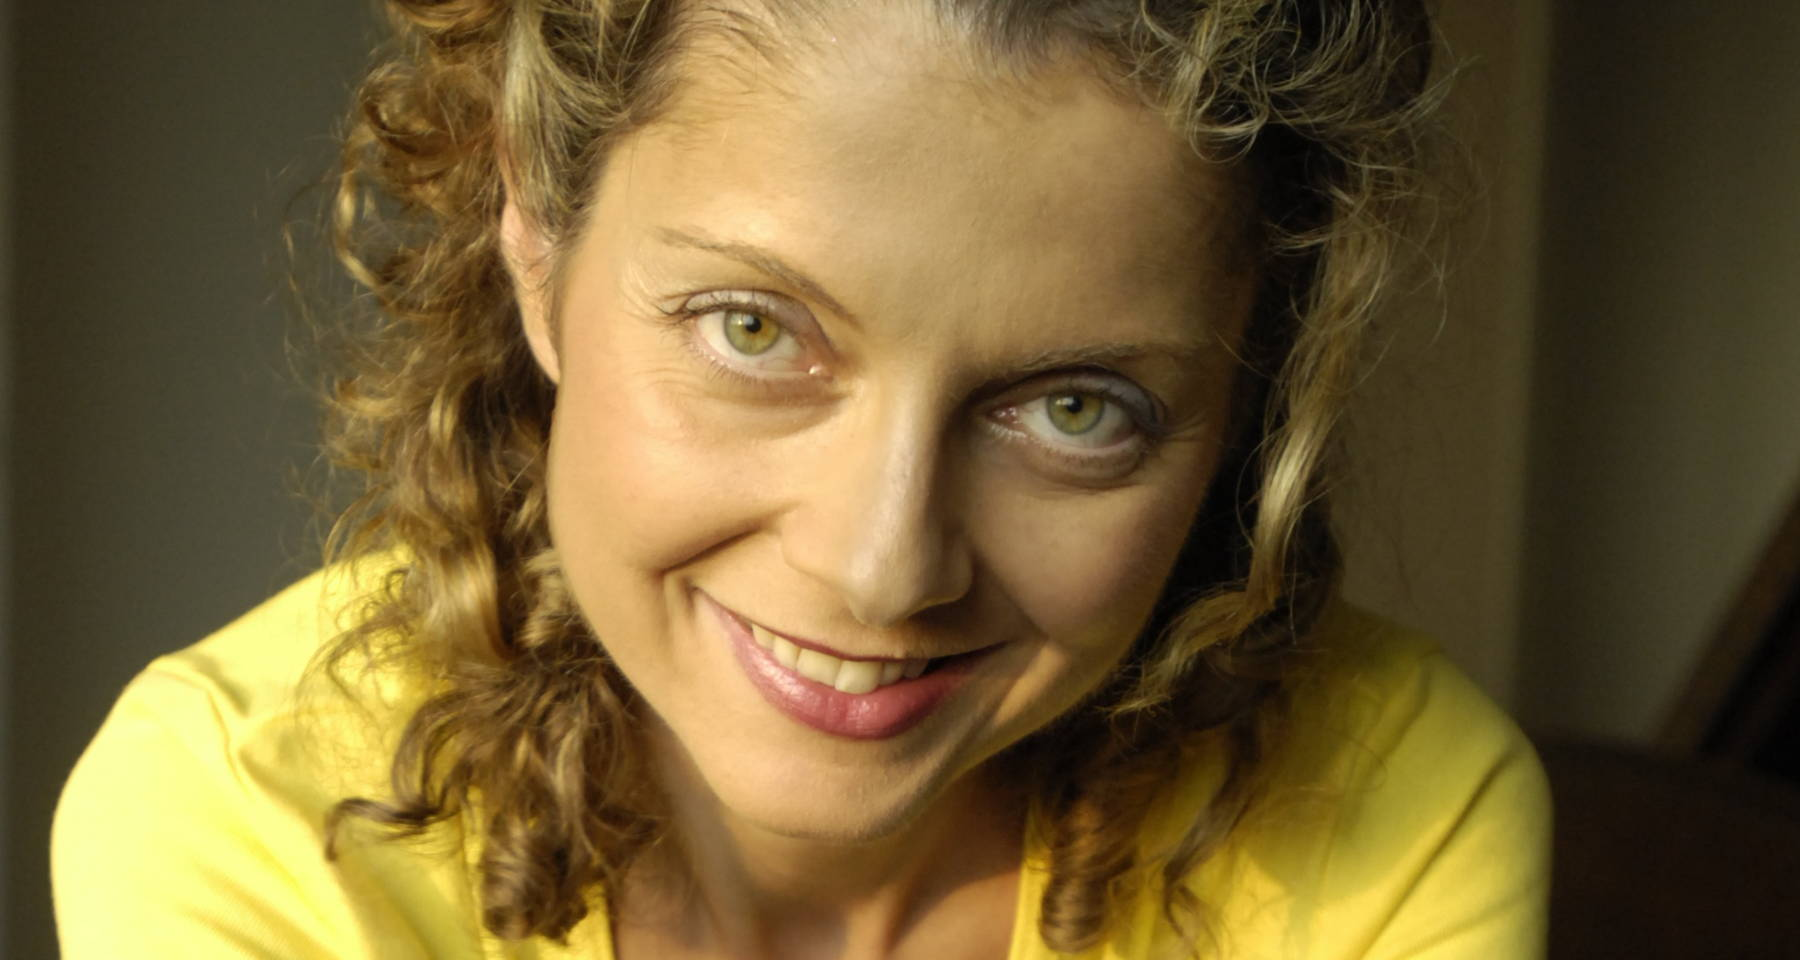 Pianist Nada/ Series of three concerts on contrasting worlds/Wilton, Chopin, Brahms